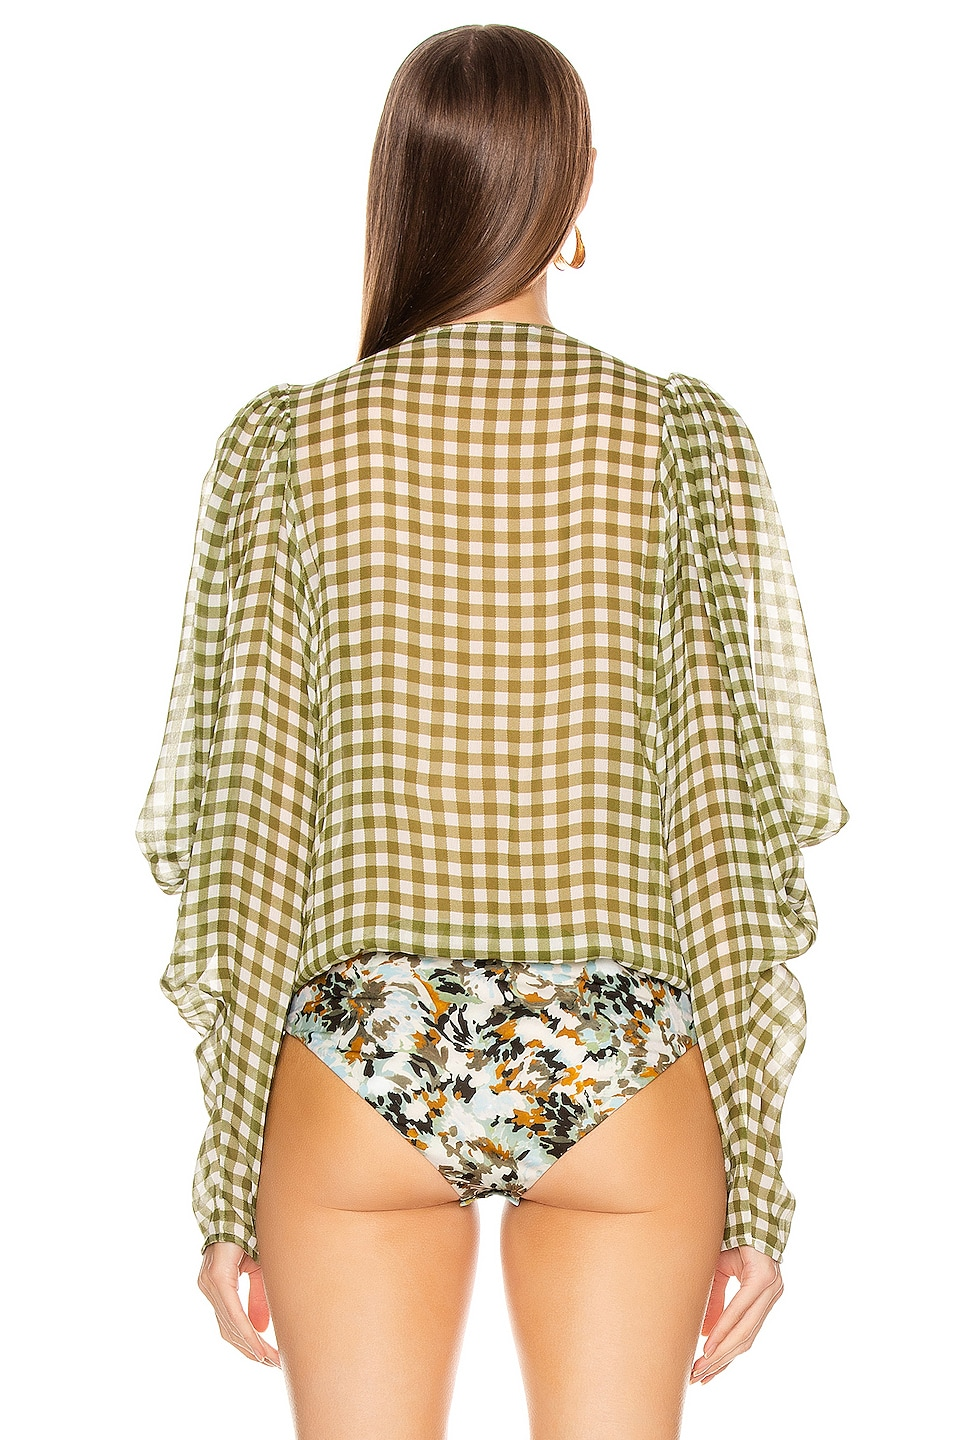 Image 4 of SILVIA TCHERASSI Hoshi Blouse in Olive Gingham